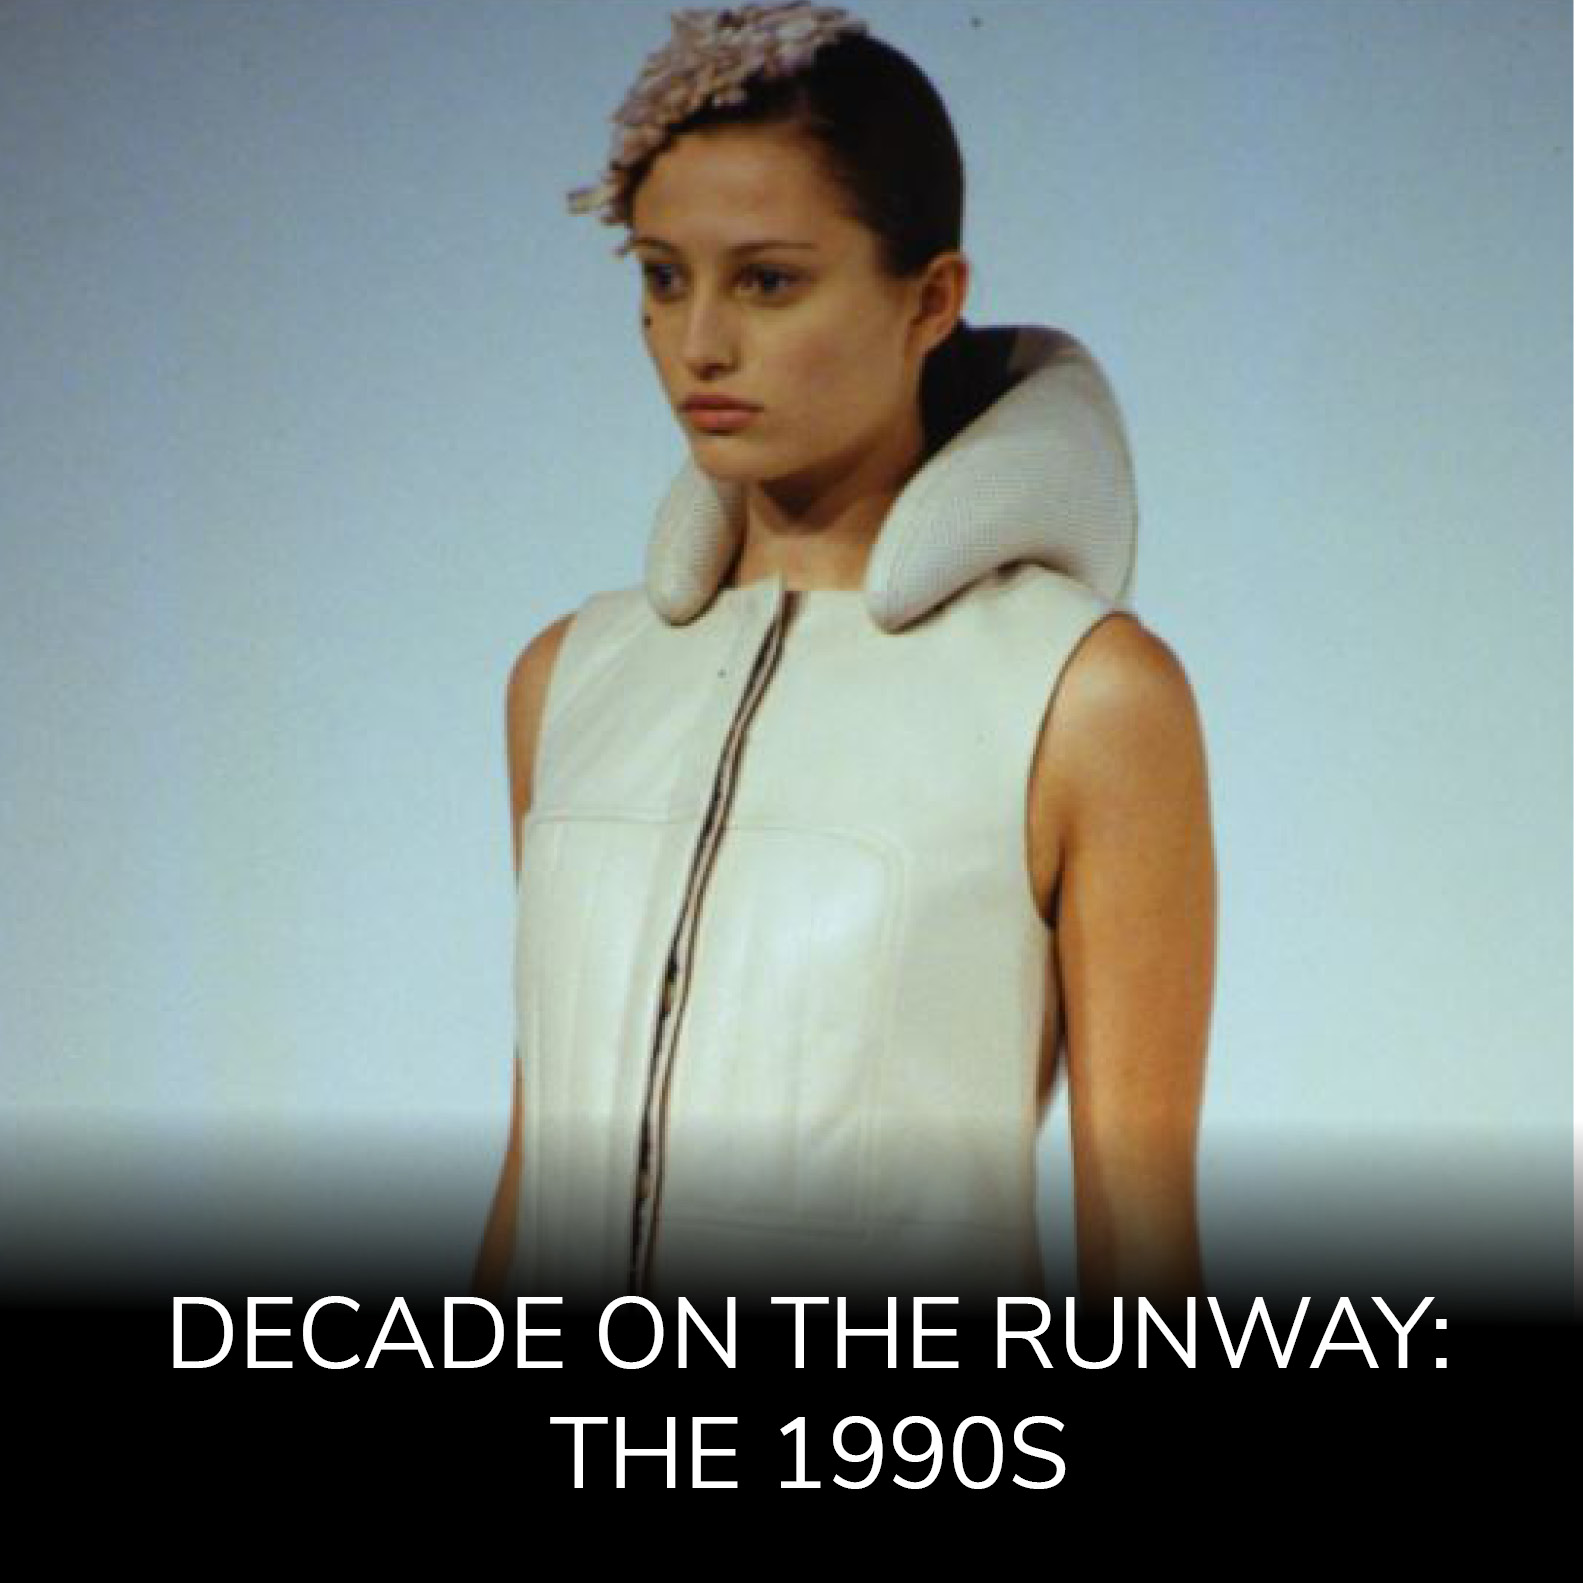 Decade On The Runway: The 1990s